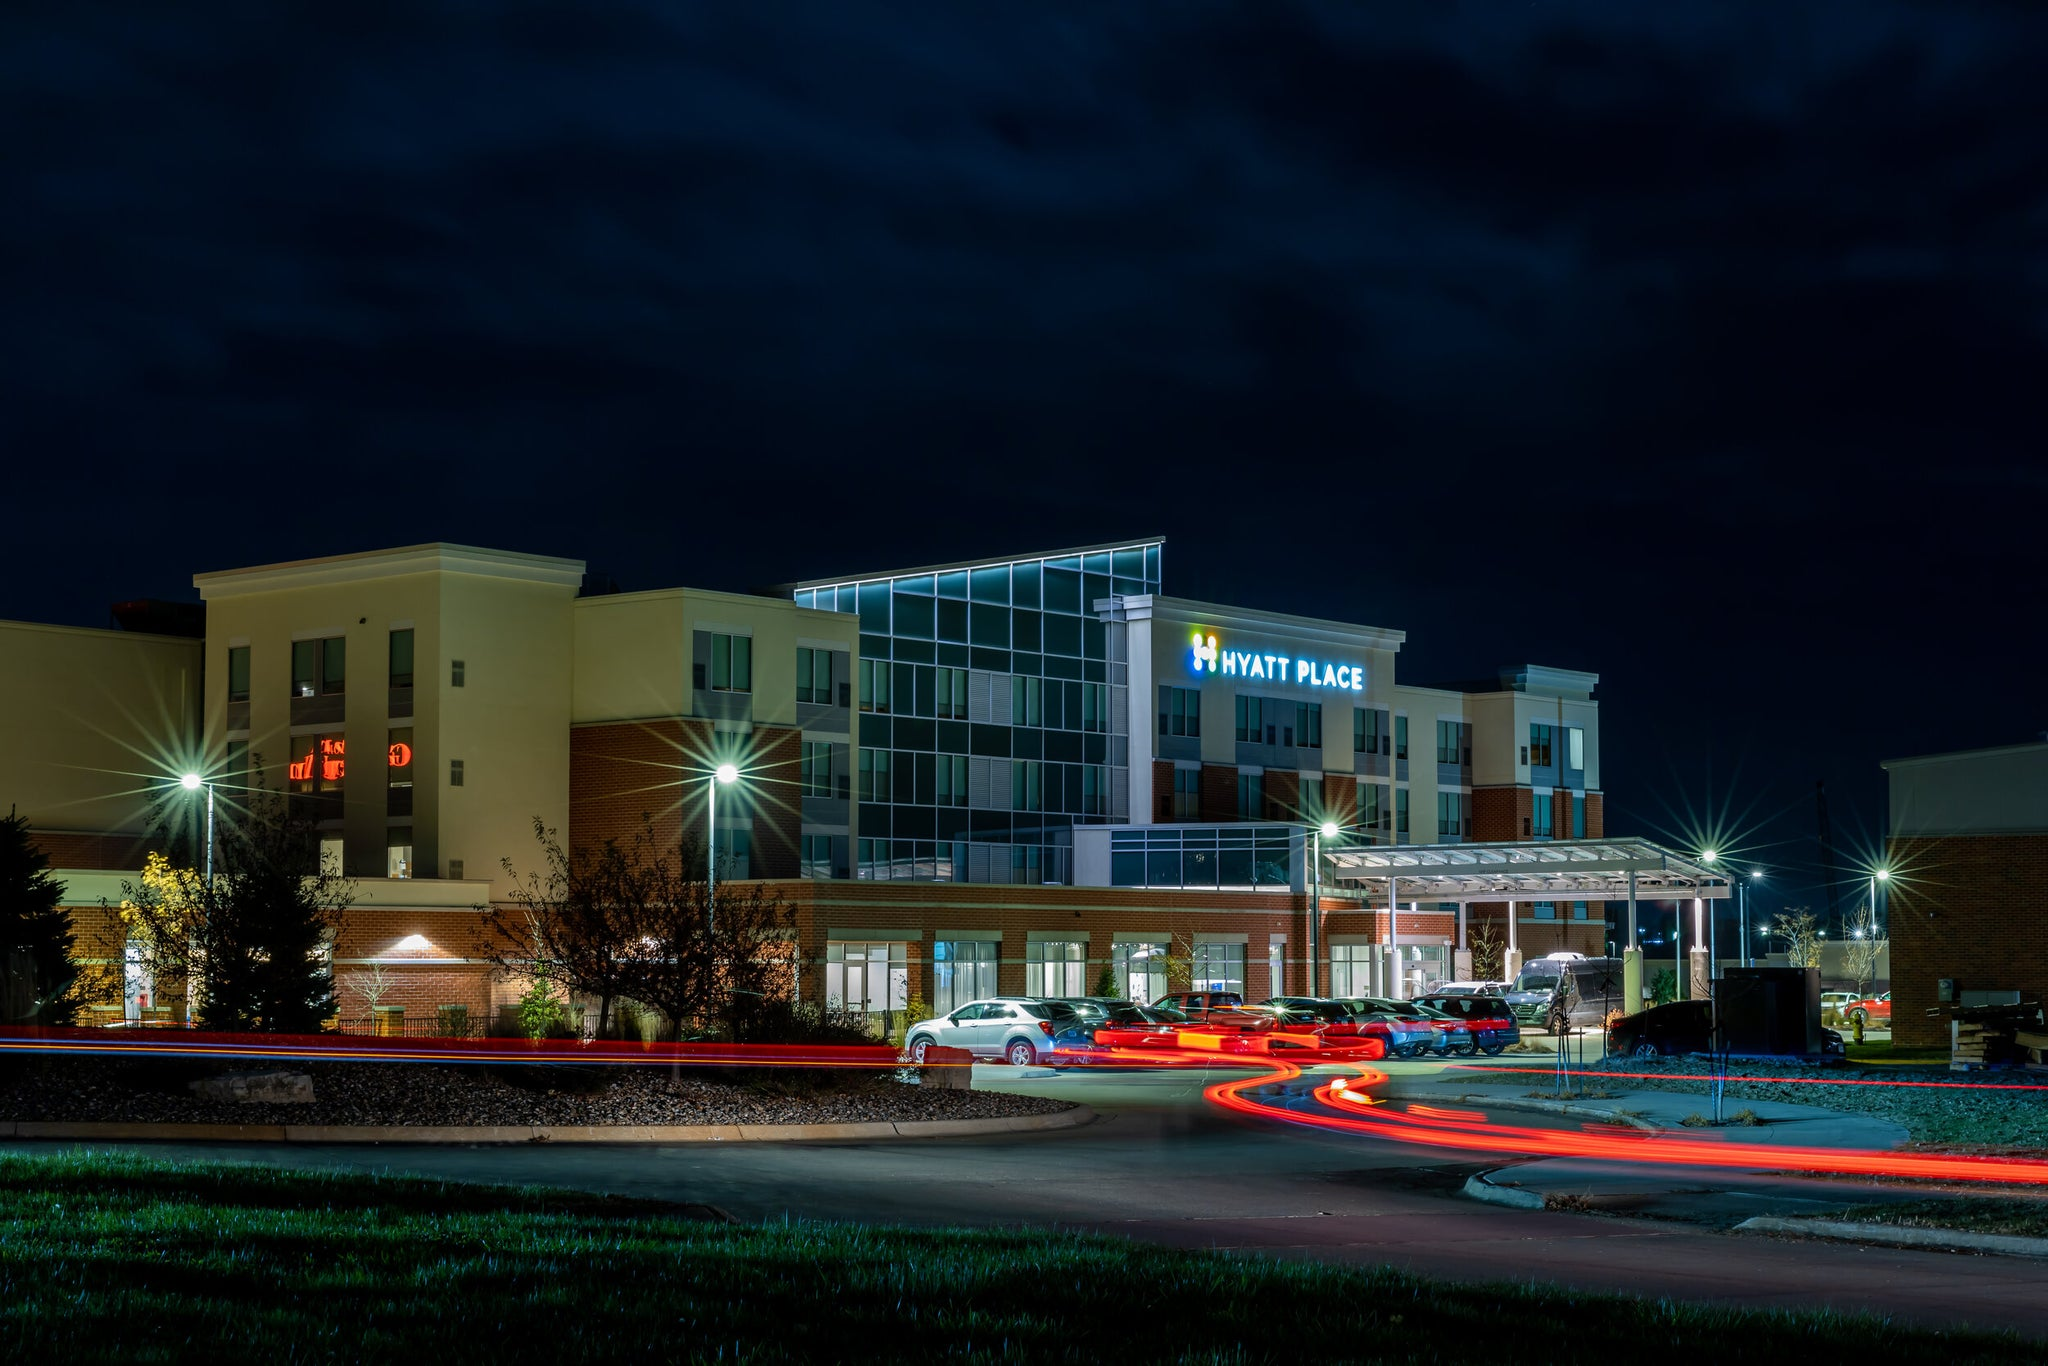 A long exposure shot of the outside of the Hyatt Place